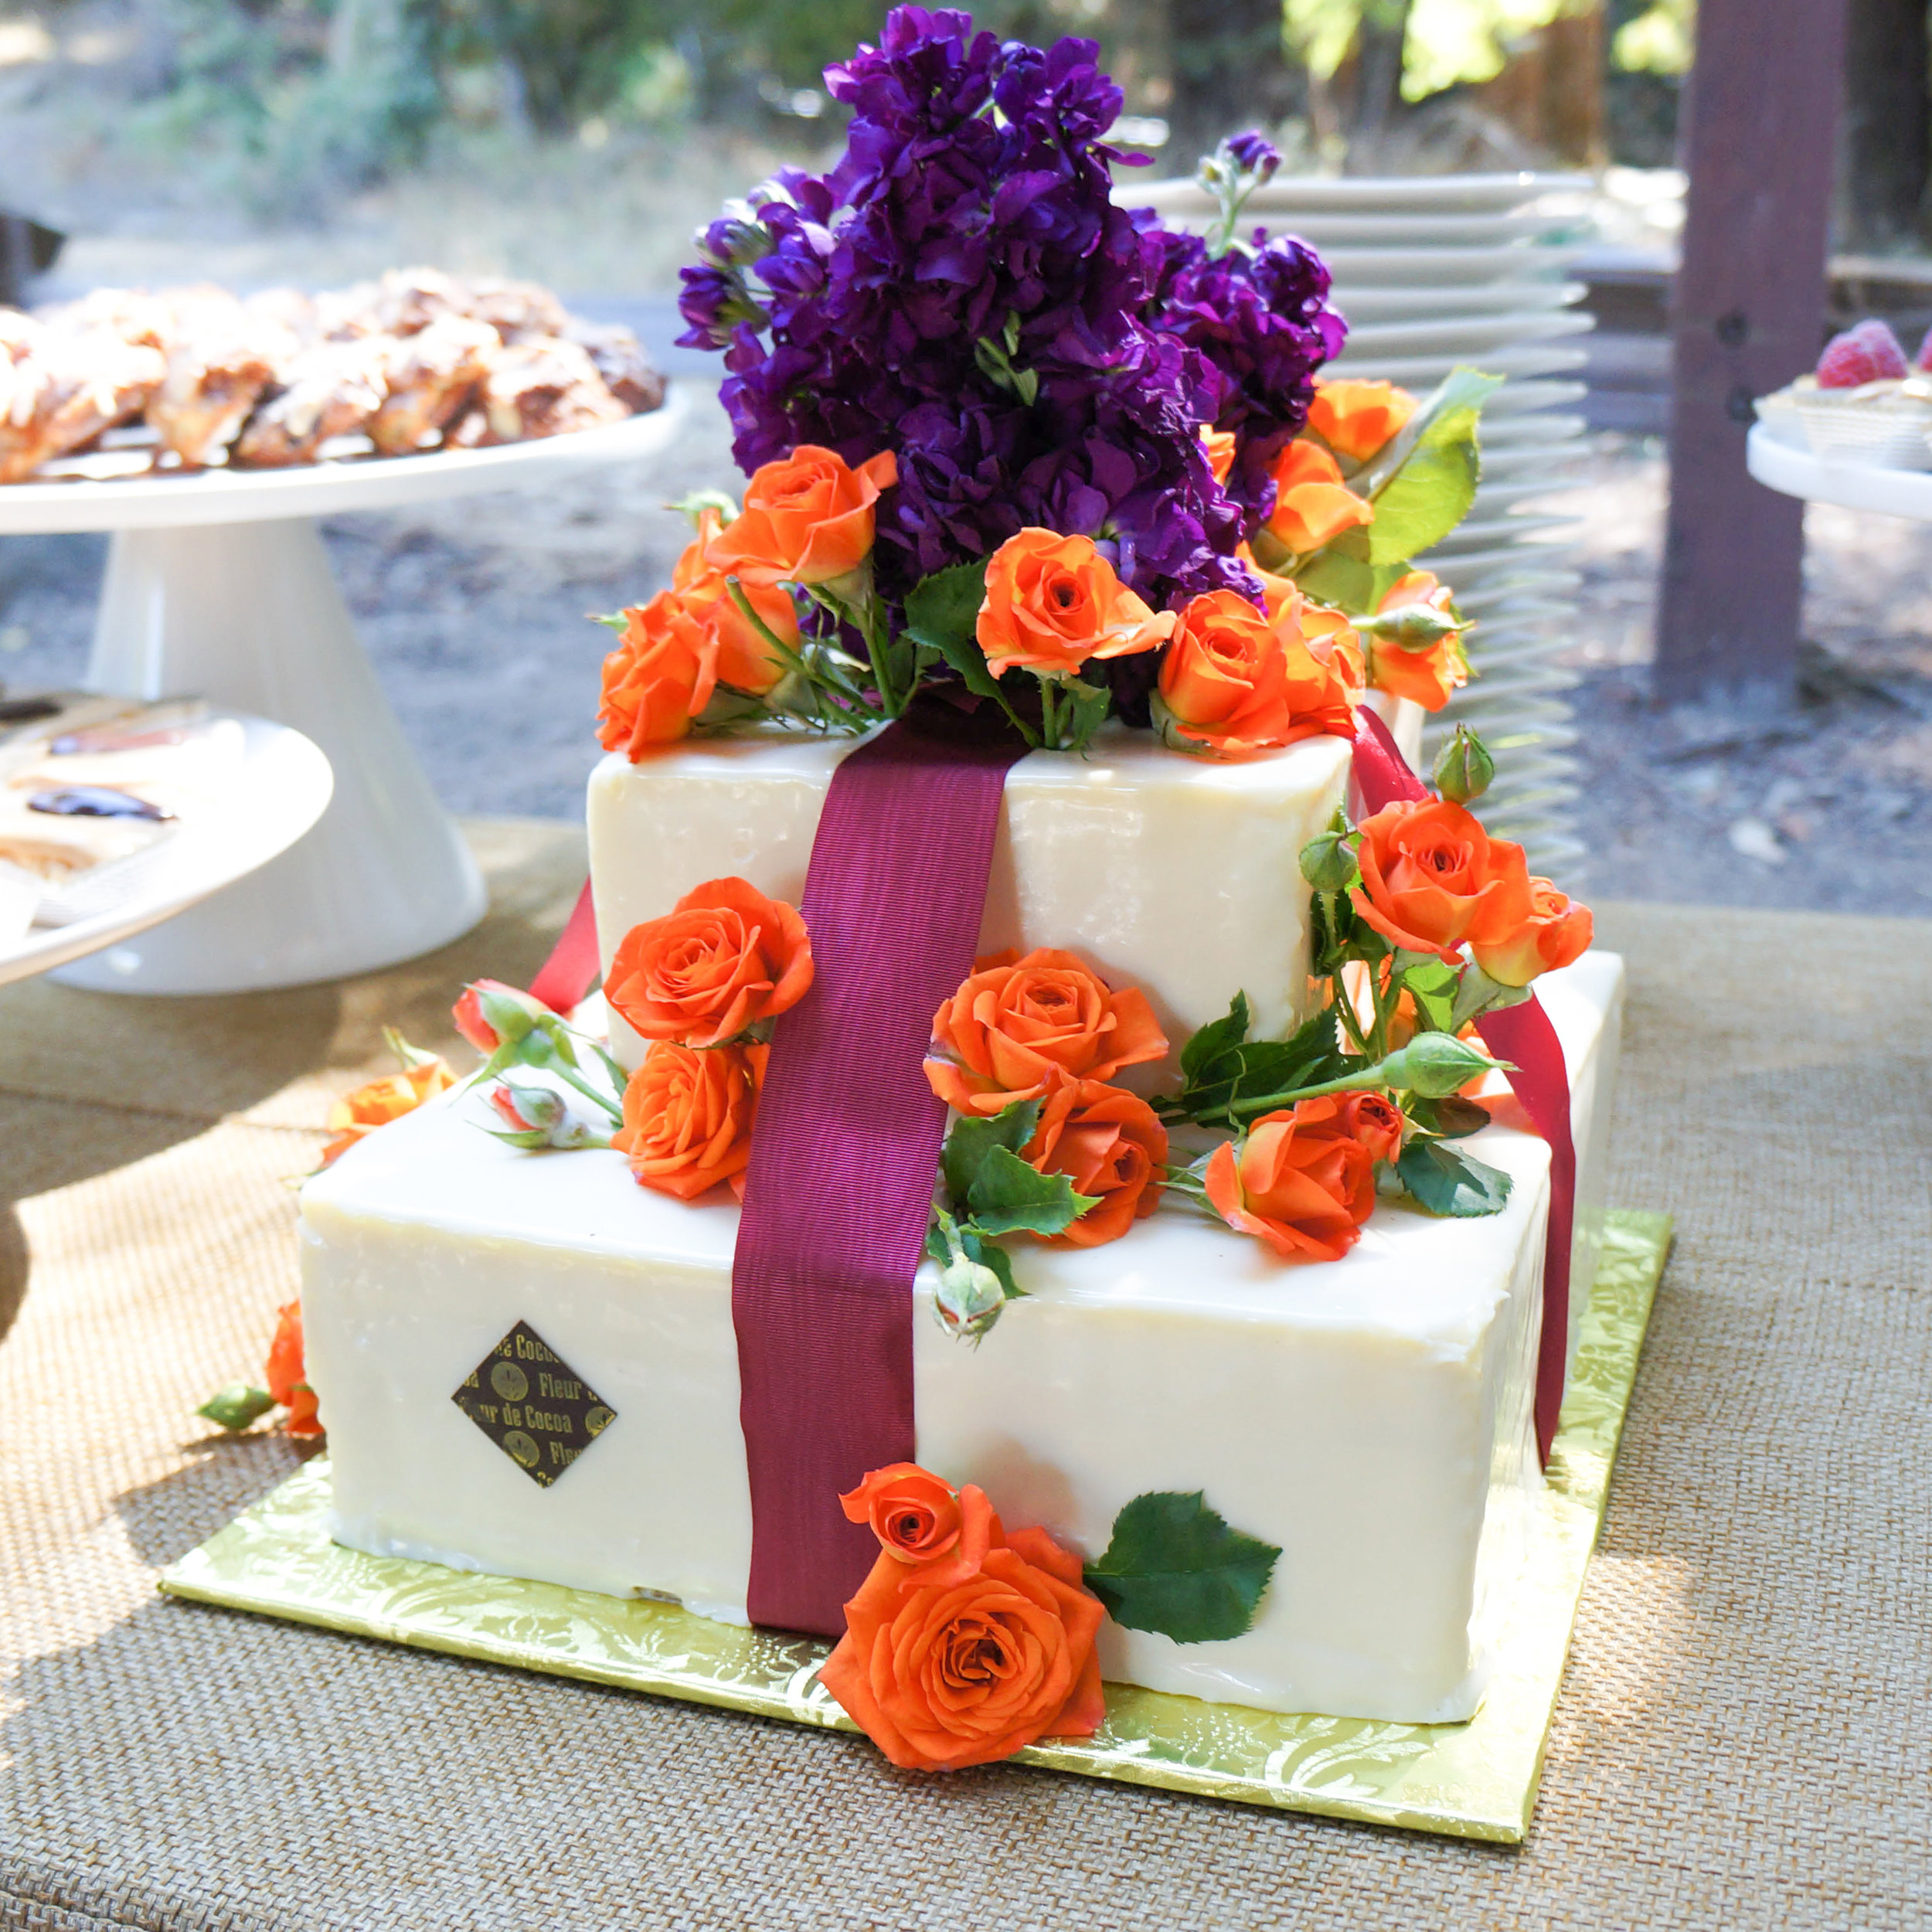 Wedding cake Zawoyski1.jpg